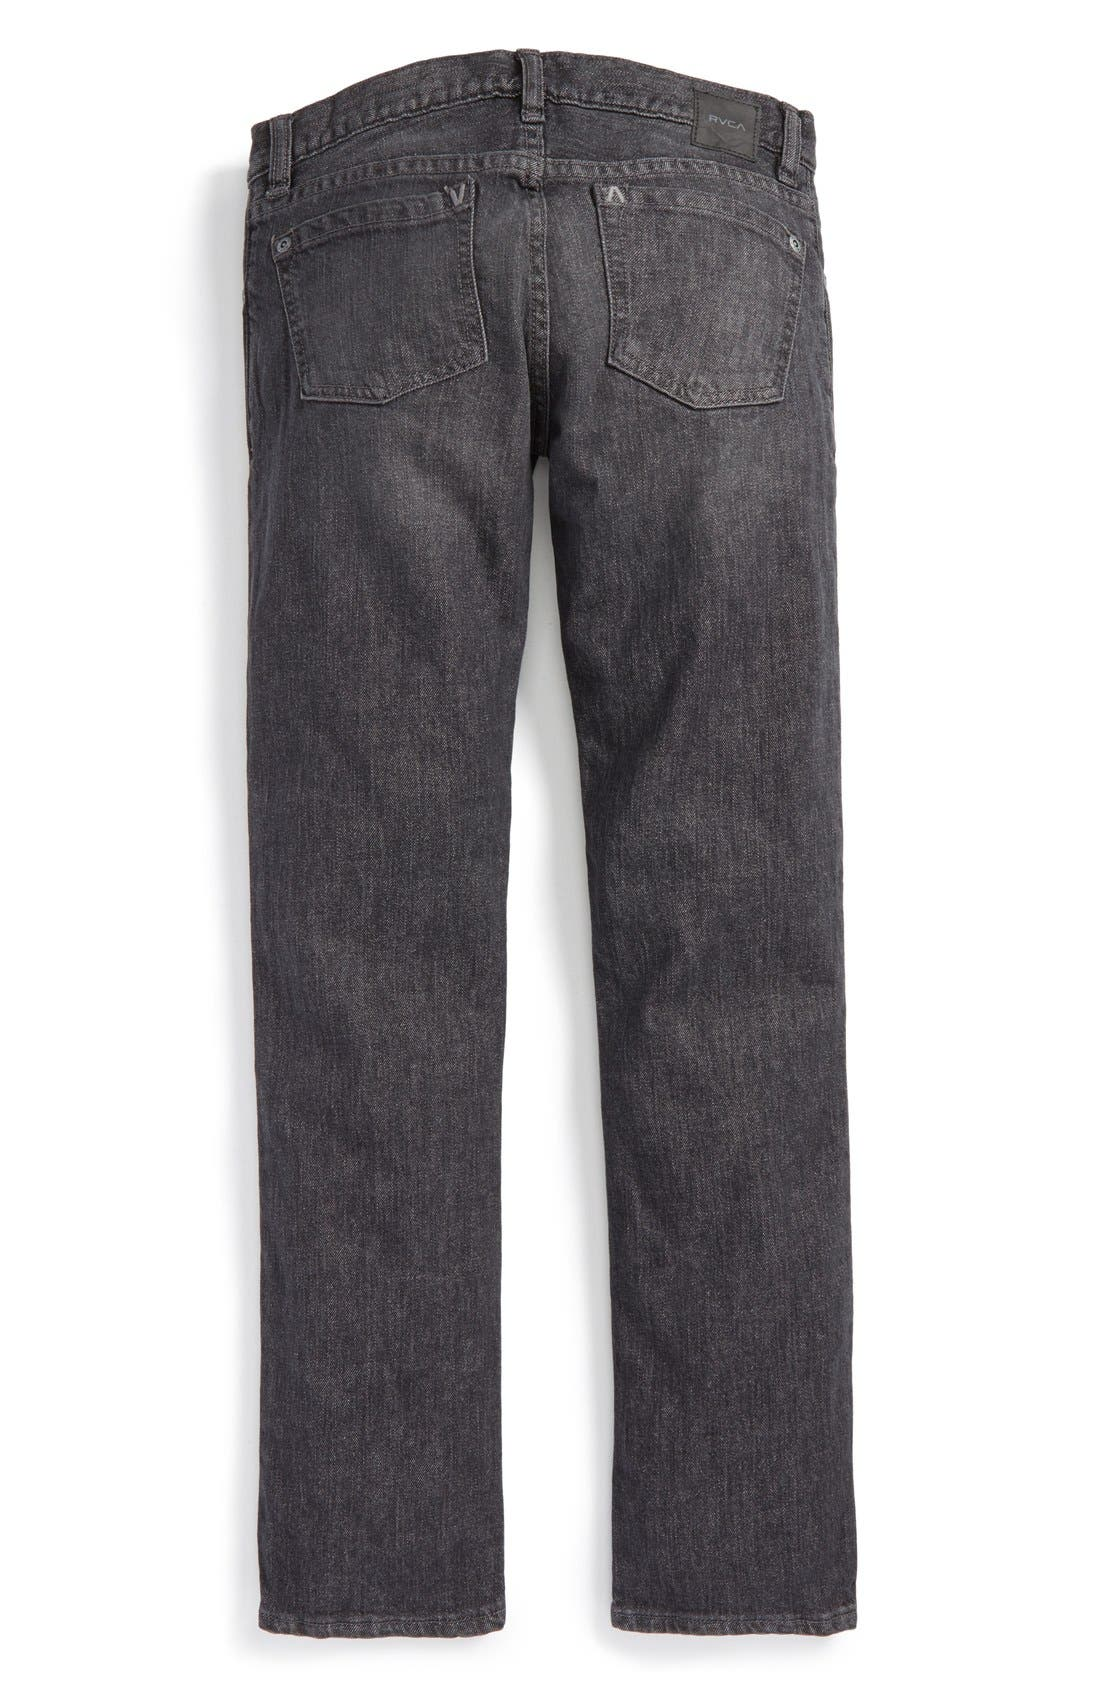 'Daggers' Slim Fit Jeans,                             Alternate thumbnail 2, color,                             005